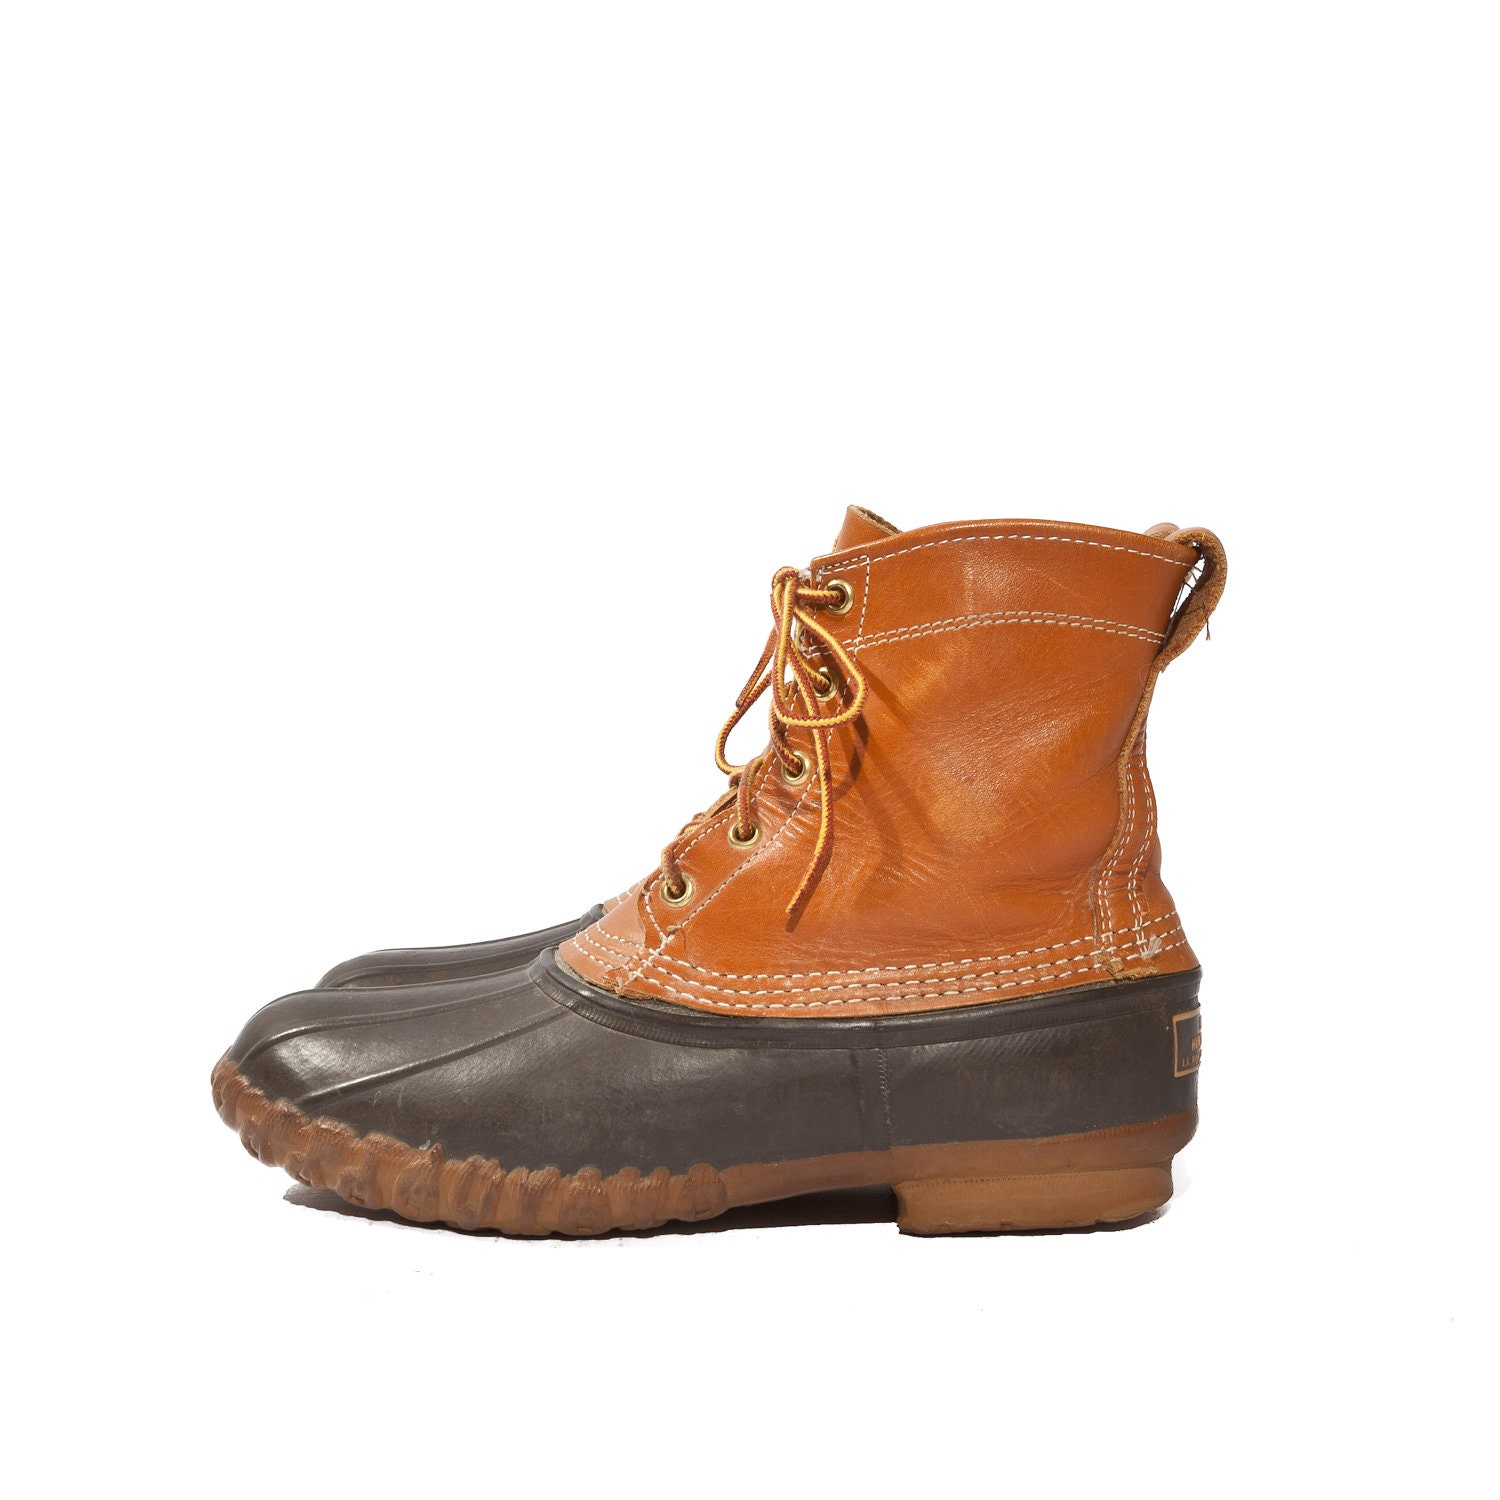 Ll Bean Doulbe Wide Shoes And Boots